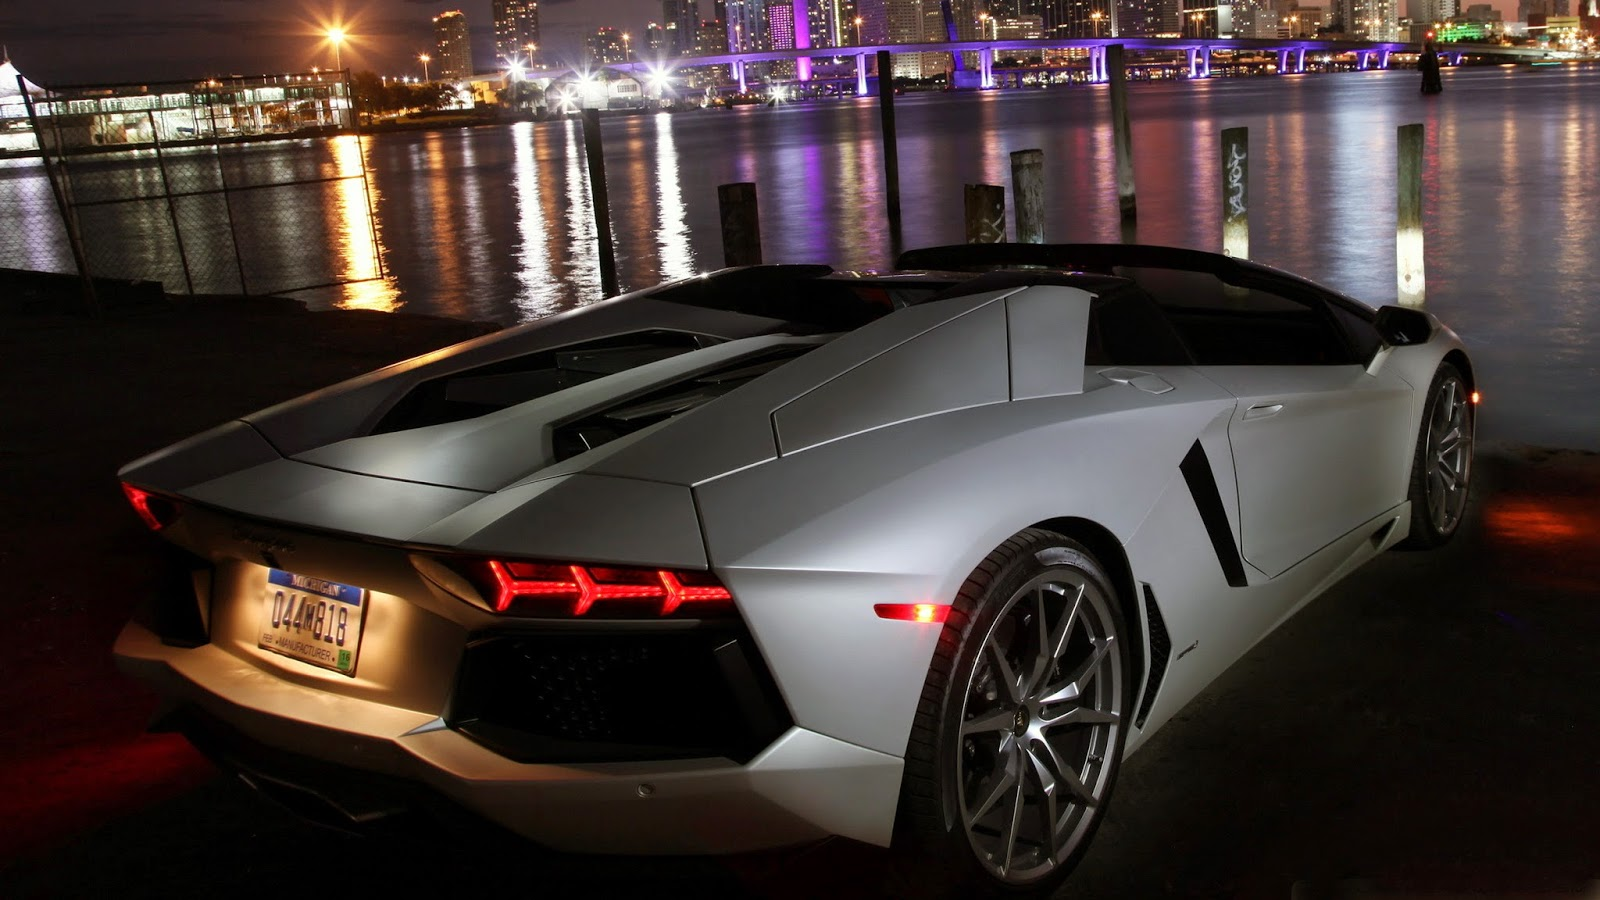 Lamborghini Aventador Hd Wallpapers 1080p Download Free Fastest Cars In The World Cool Wallpapers